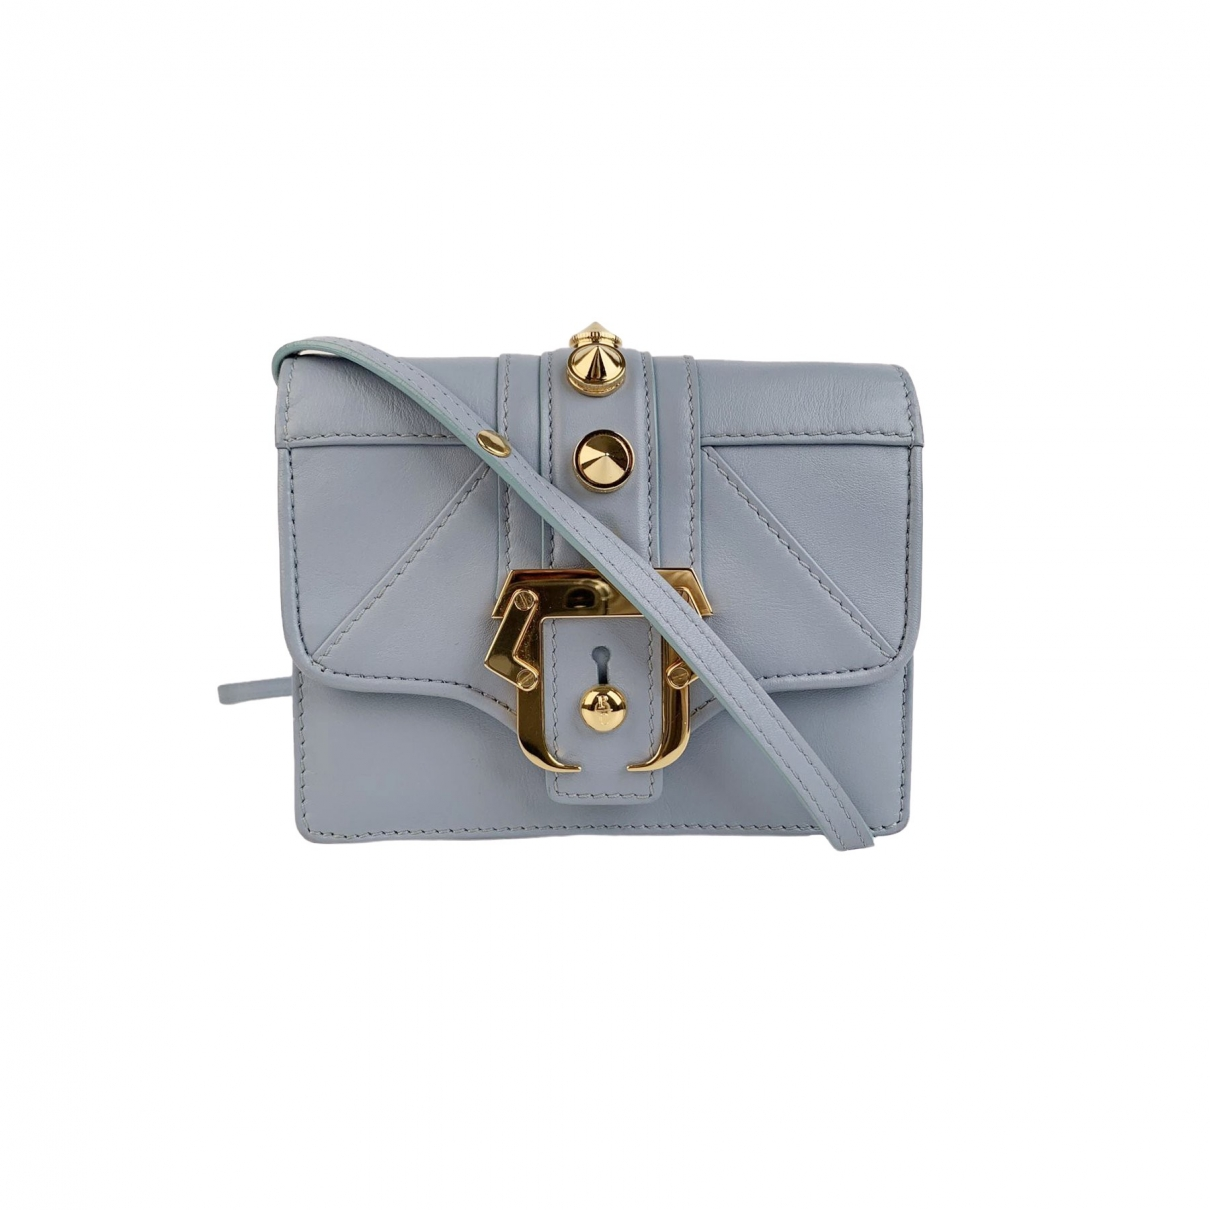 Paula Cademartori \N Blue Leather handbag for Women \N